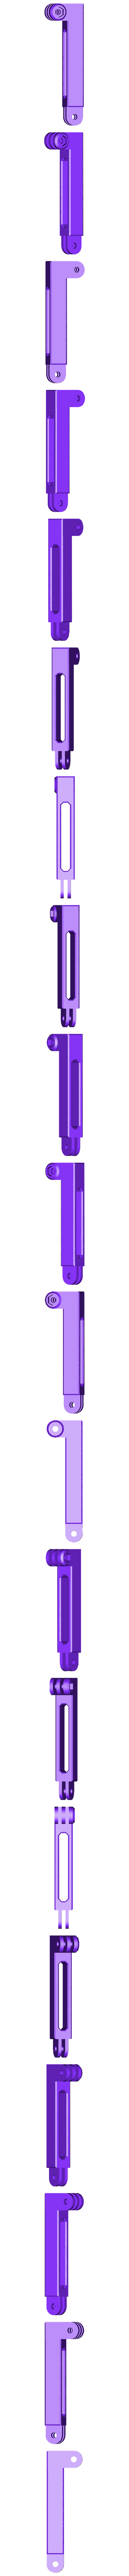 Arm_90.stl Download free OBJ file serre phone pour trepied • 3D printing model, Cyborg